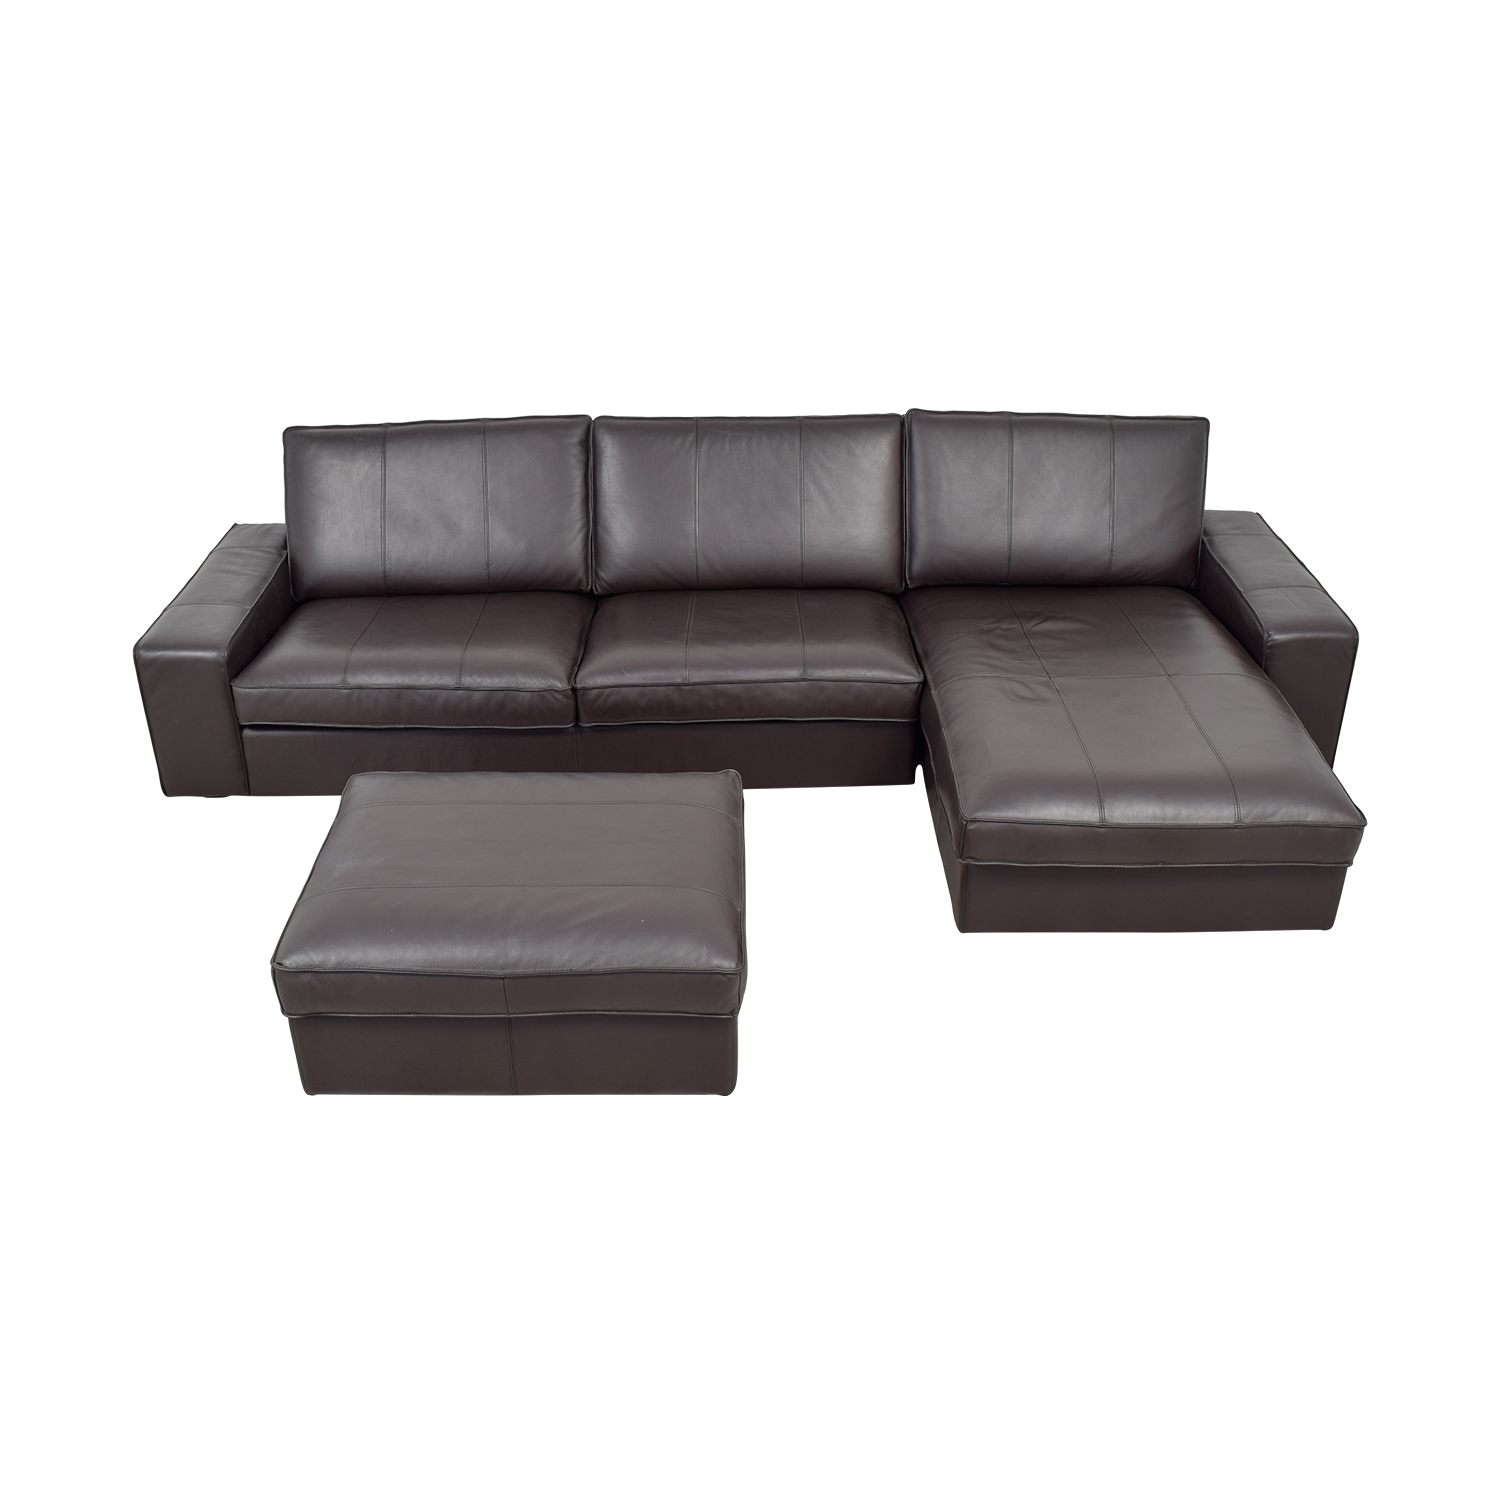 IKEA IKEA Kivik Chaise Sectional with Ottoman Sofas